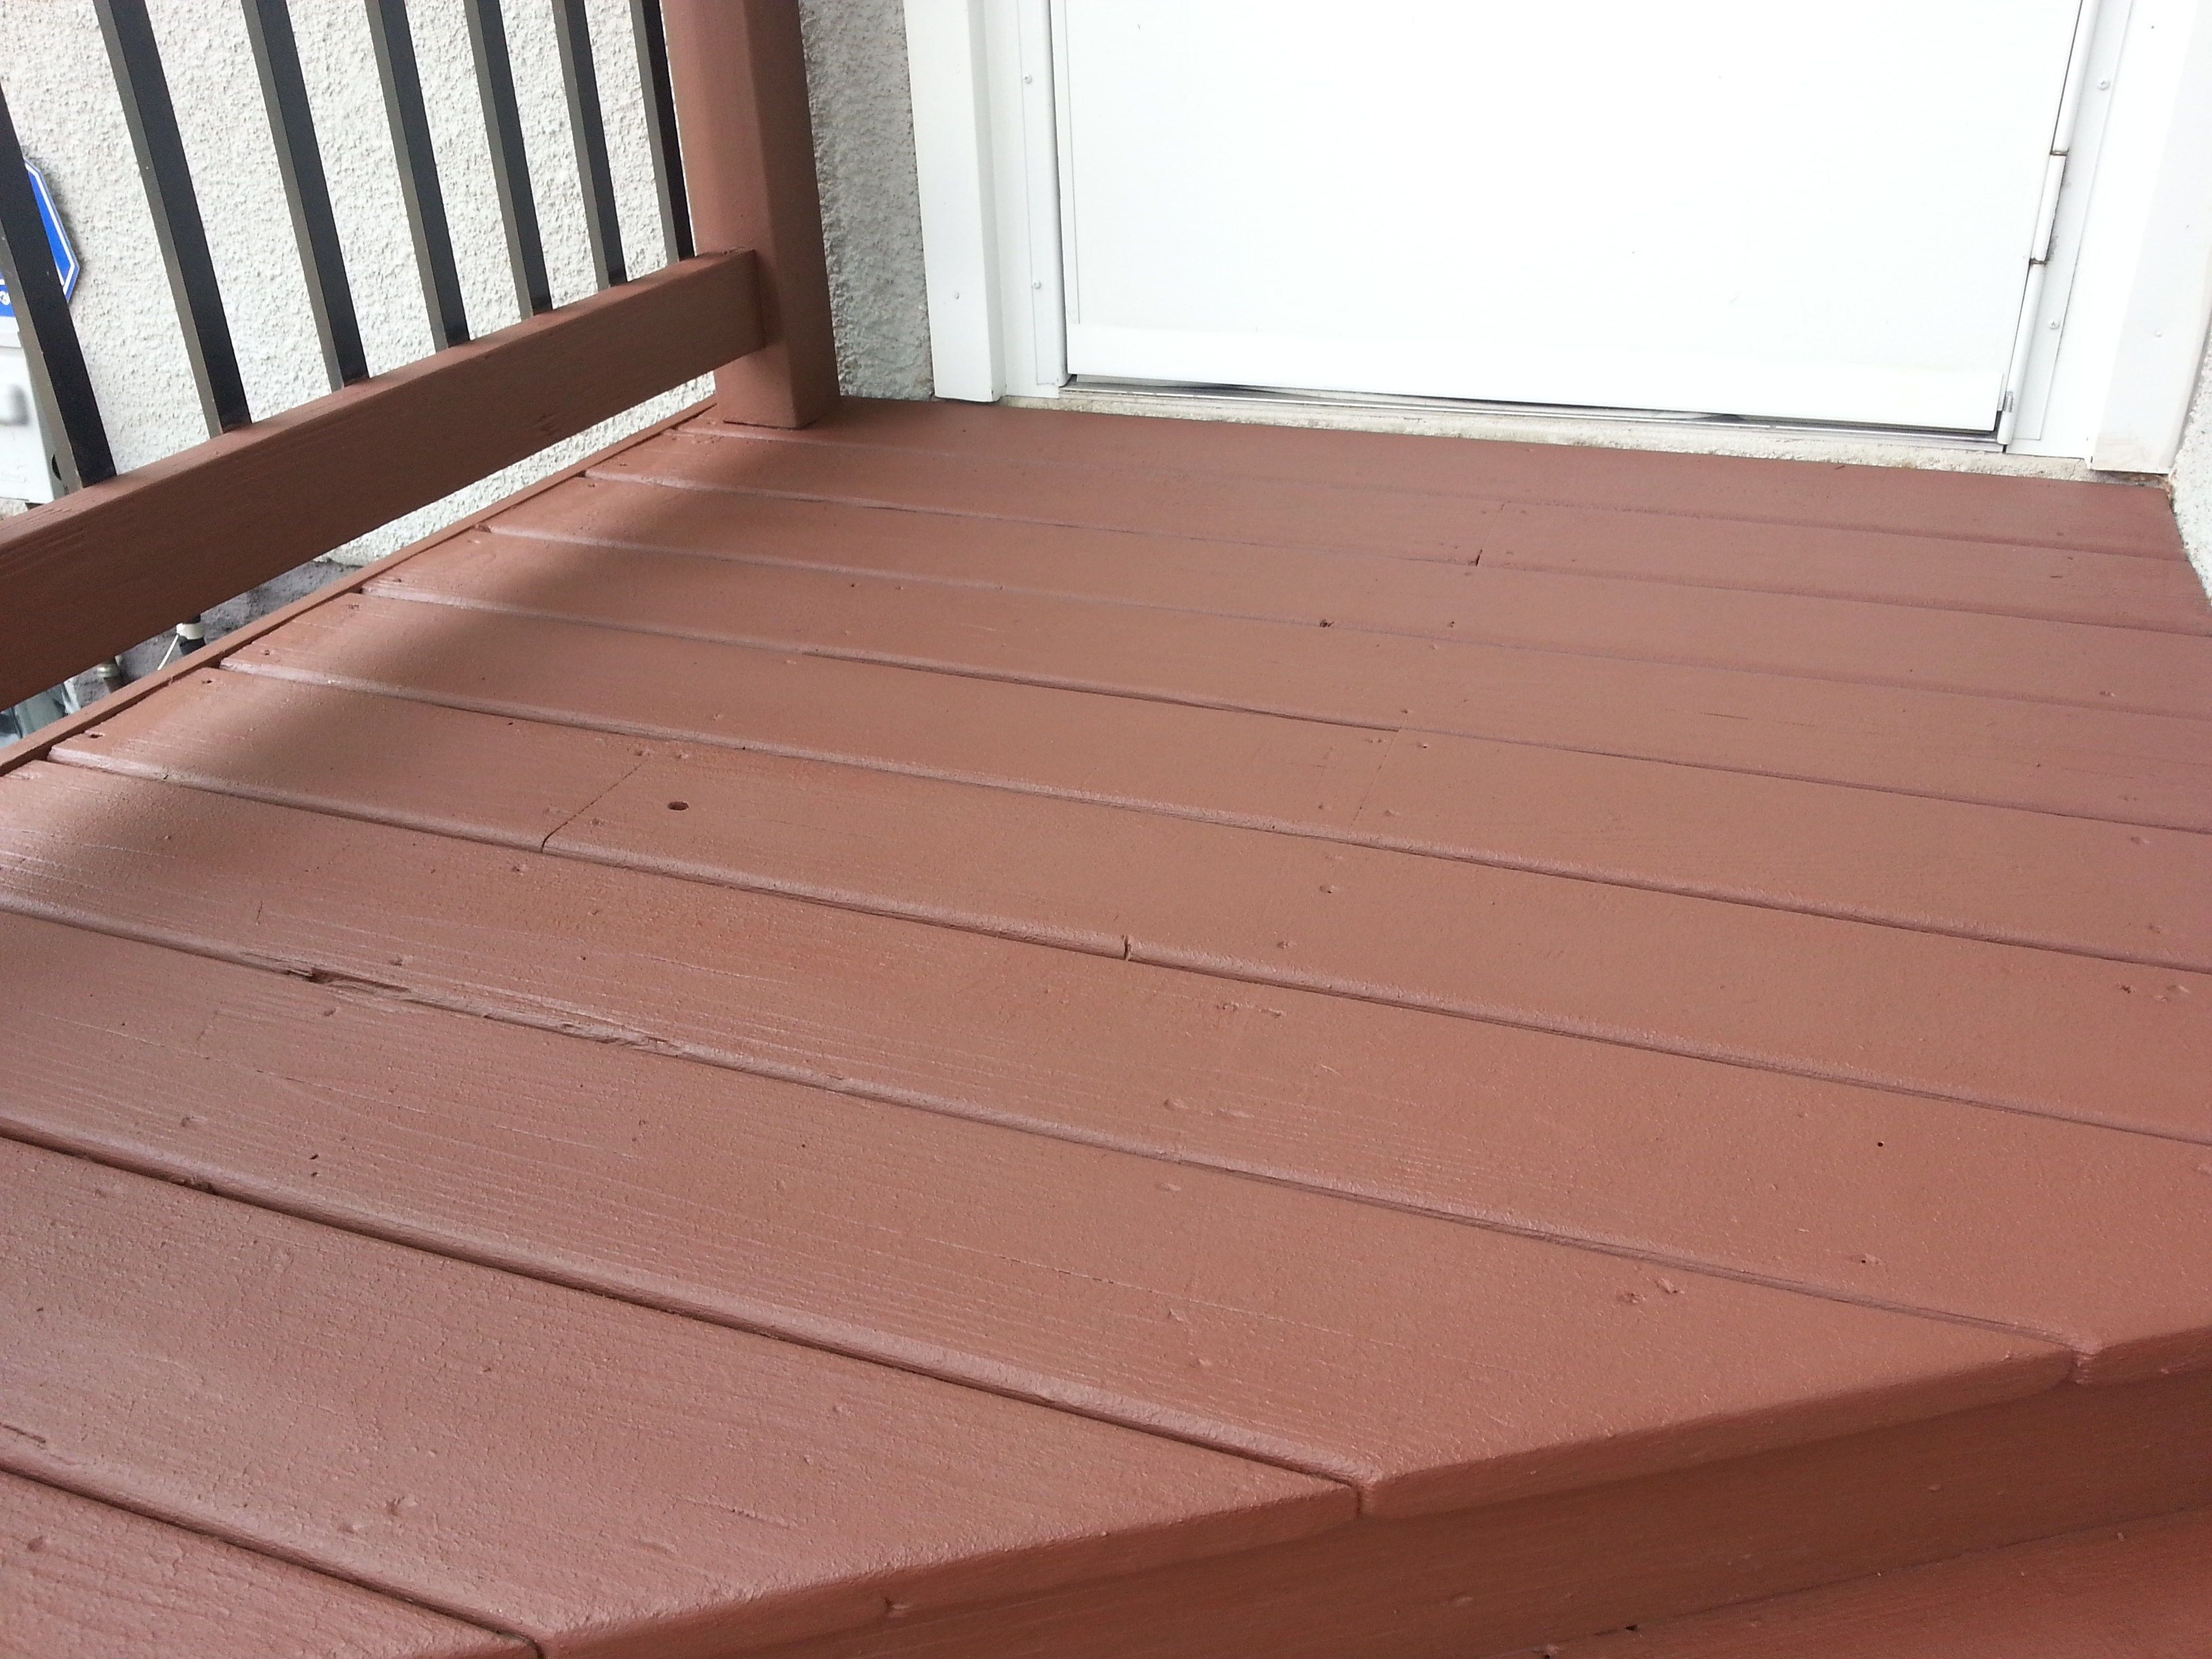 How to Use Behr Deckover | Behr Premium Deckover Reviews | Behr Deck Over